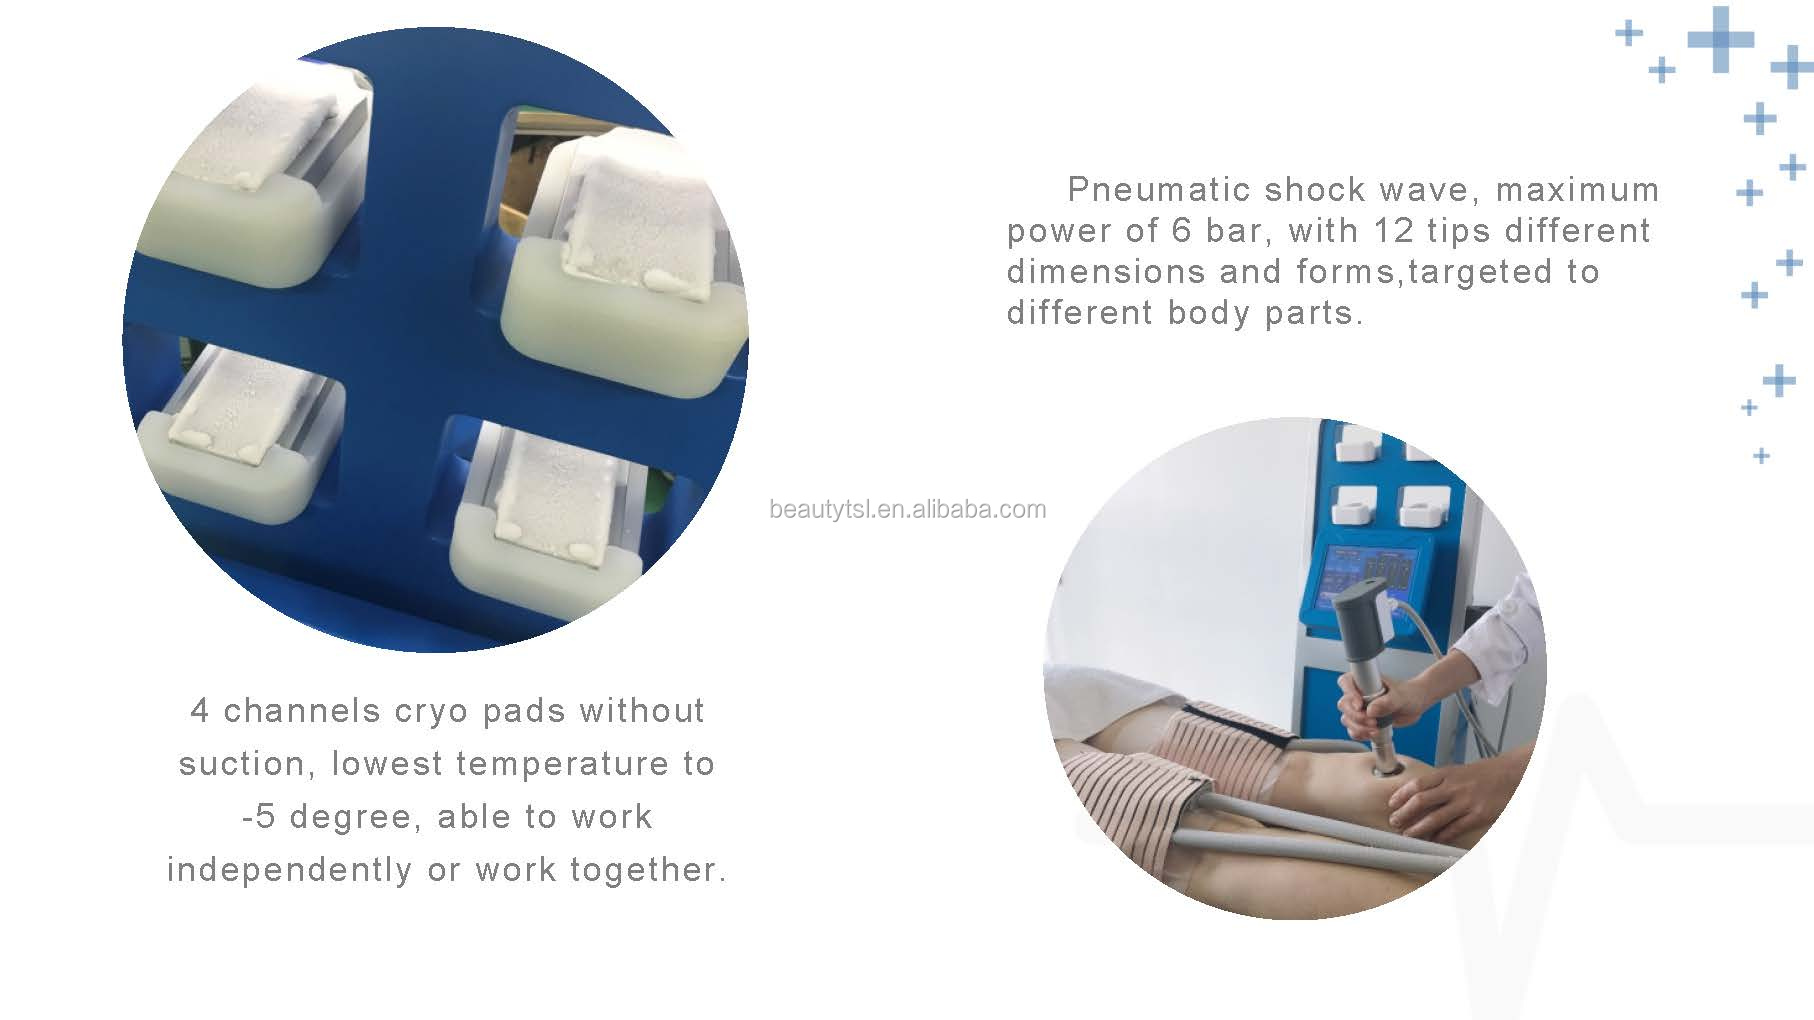 sw10f cool wave plus 10 LINGMEI 2in1 cool pads Physiotherapy Shockwave Therapy Rompe plantar fasciitis shockwave therapy apparatus.jpg